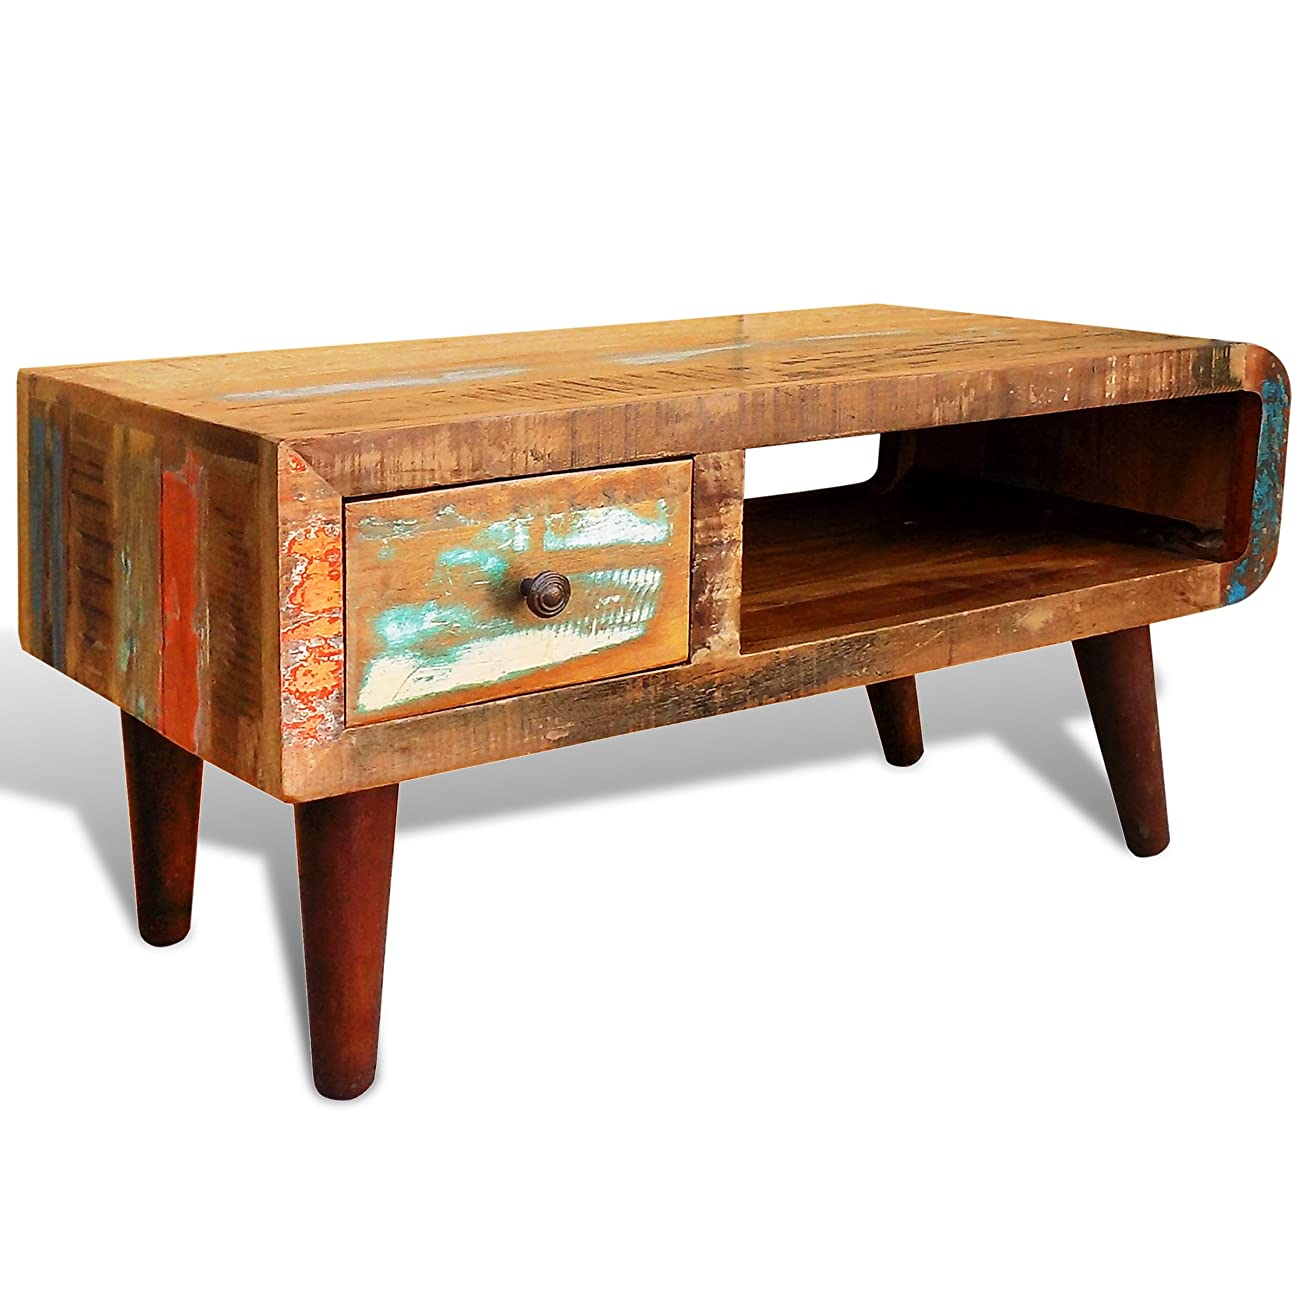 vidaXL Antique-style Reclaimed Wood Coffee Table Curved Edge 0